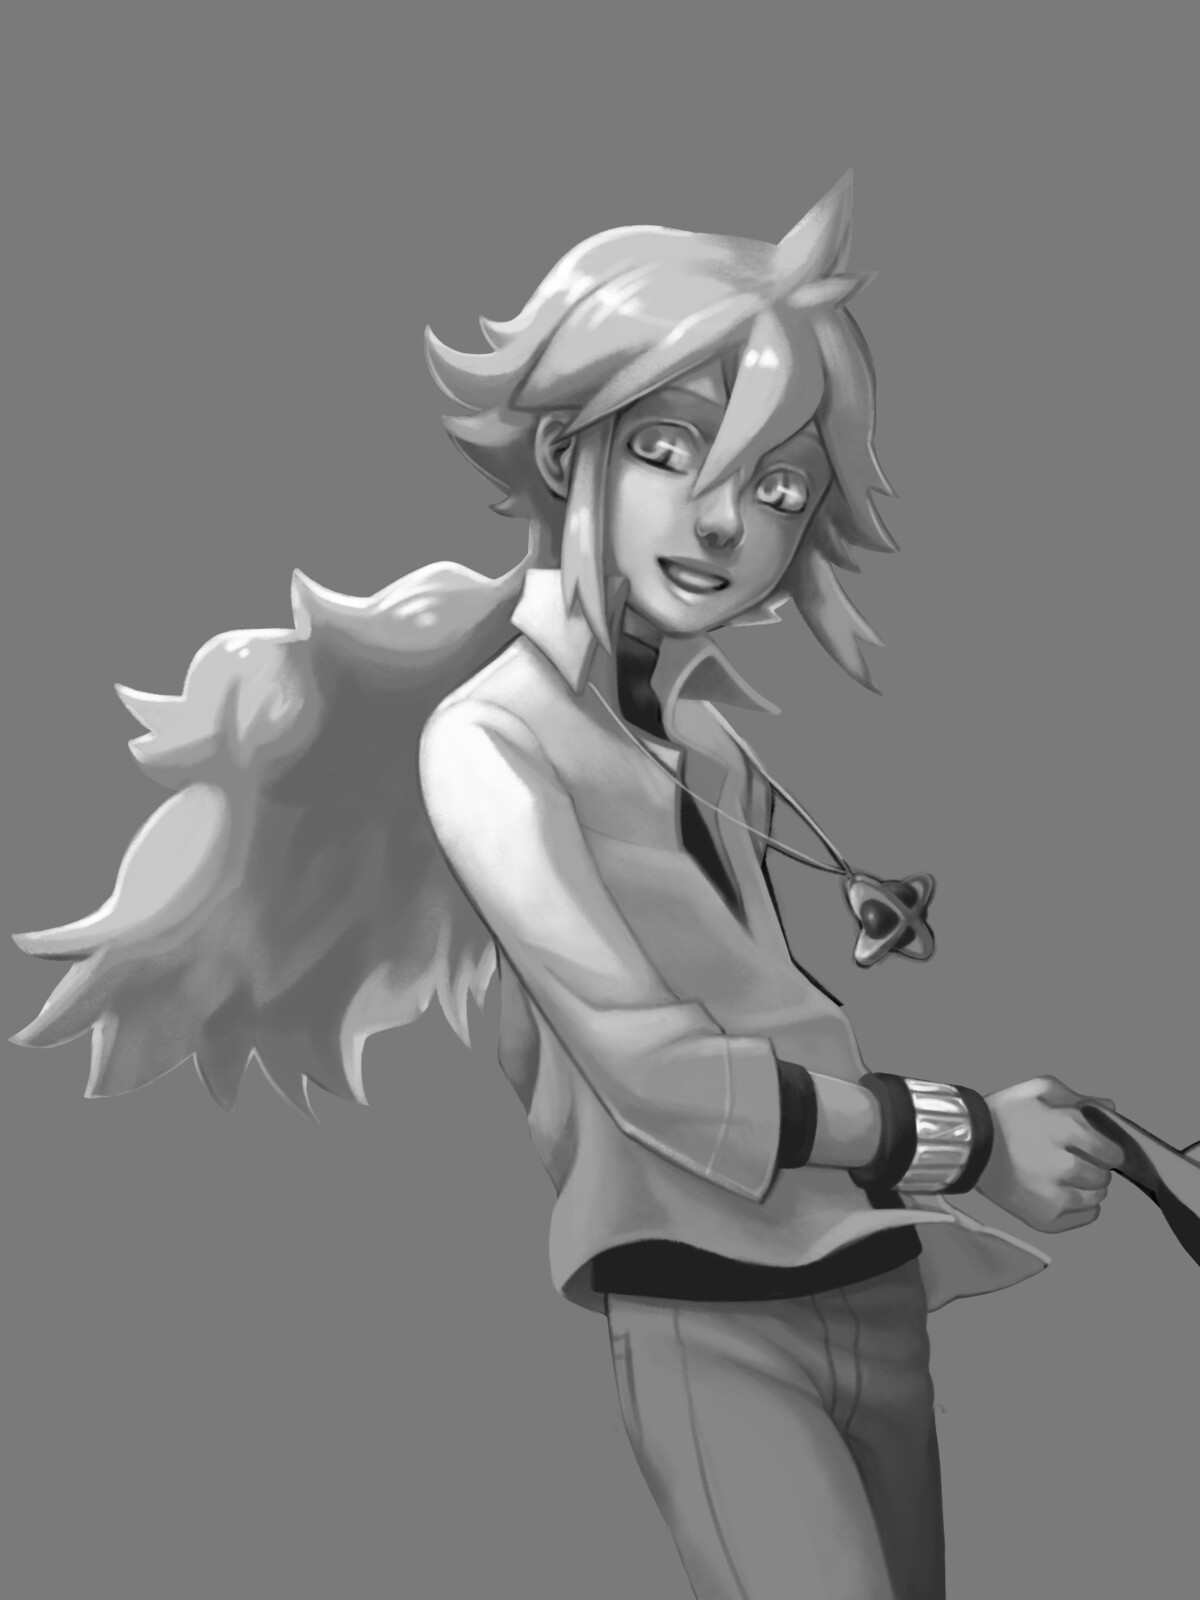 Initial grayscale painting of character